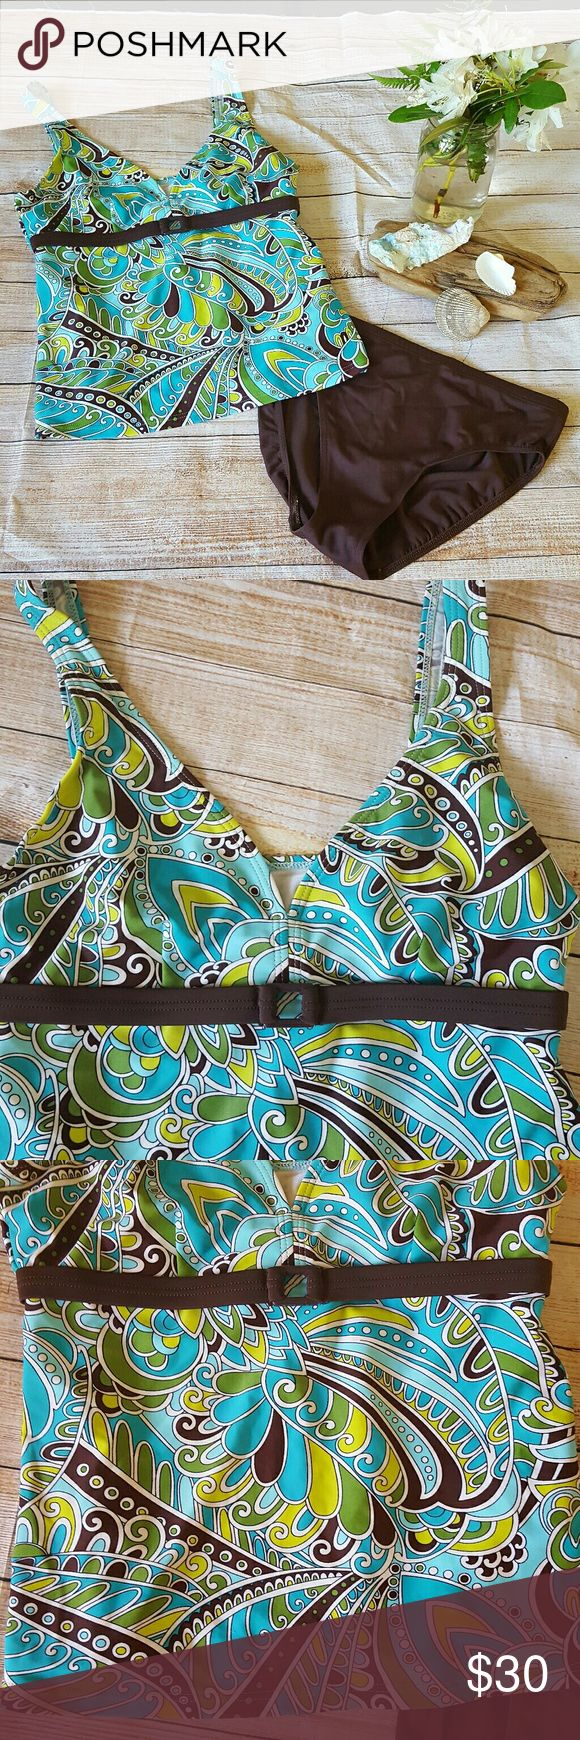 Tropical Honey Womens Tankini Swimsuit Size 12i Tropical Honey Womens Tankini Swimsuit - Bathing Suit; Top & Bottoms; Turquoise Blue and Brown. Size 12. Gently used condition. Tags have been cut out of the bottoms. Please see photos for details. tropical honey Swim